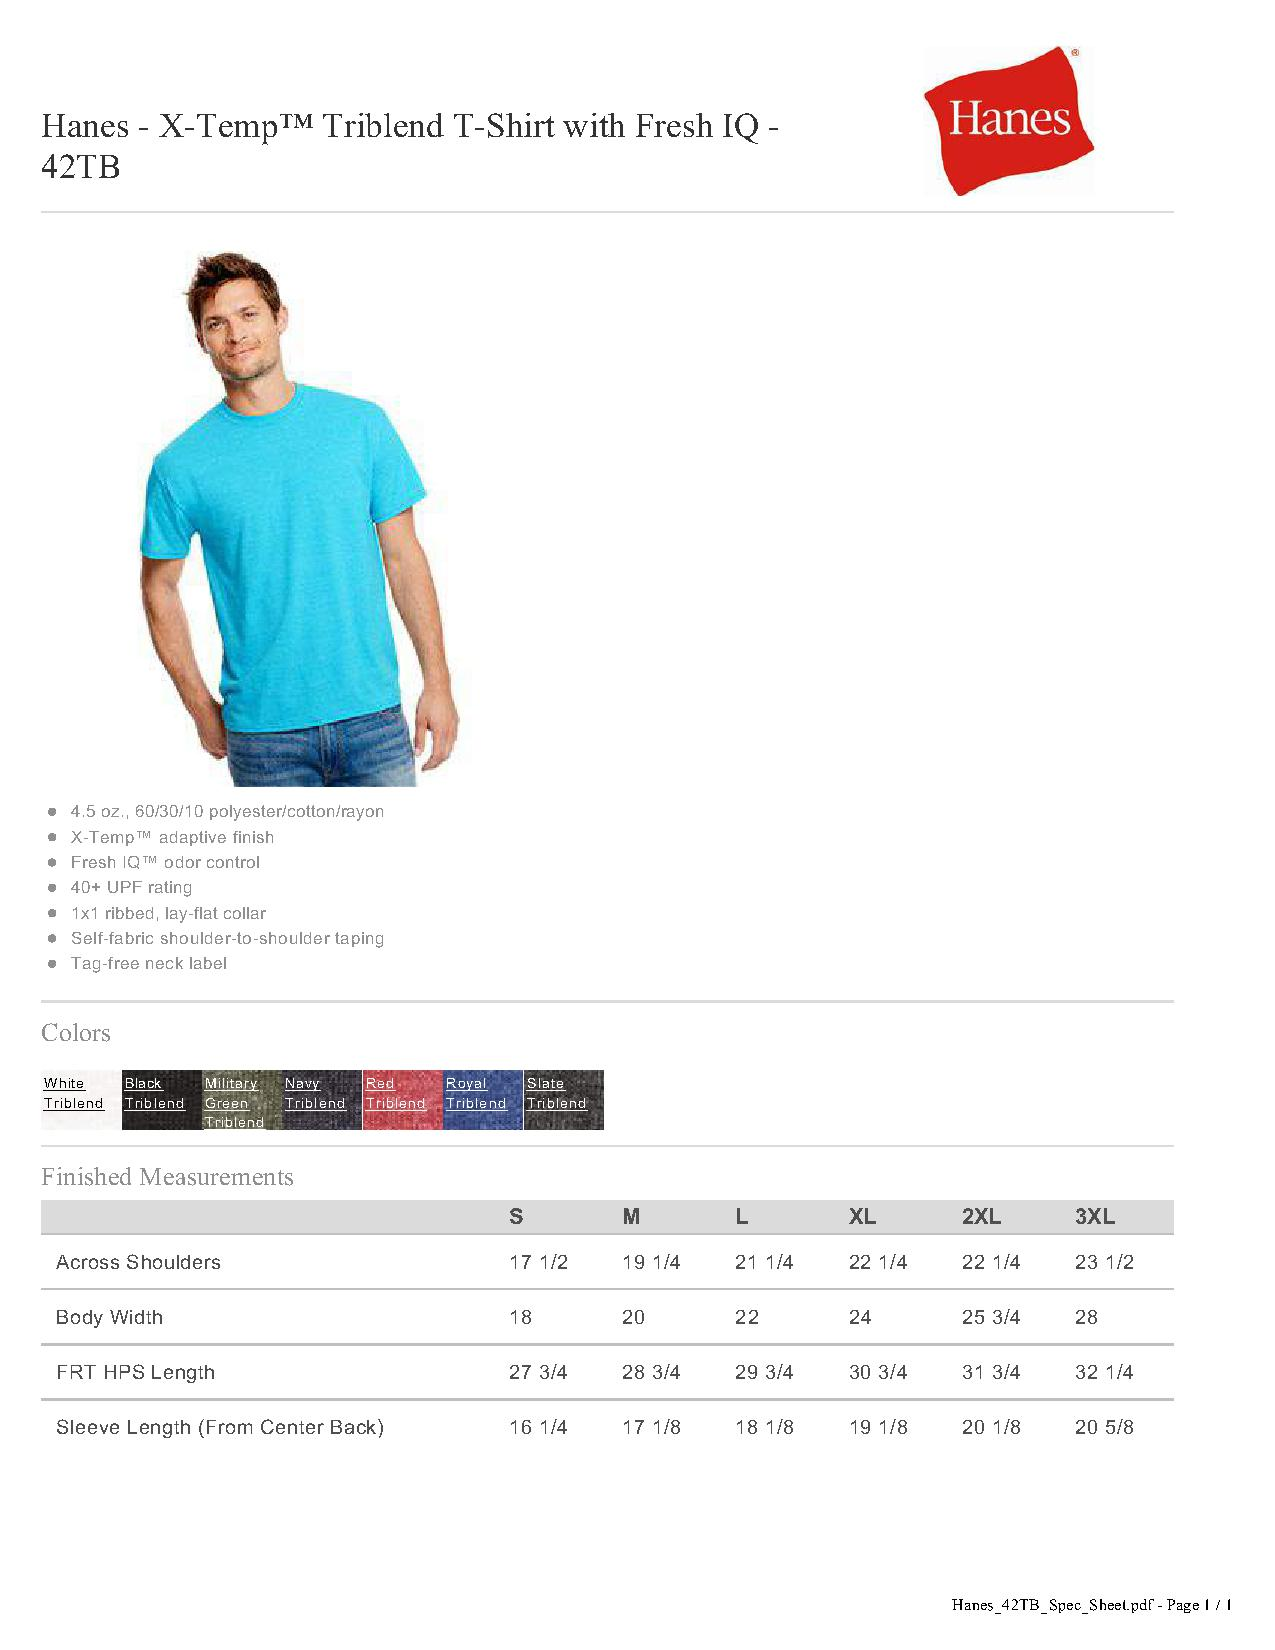 99d913ac78aa5 Hanes 42TB - X-Temp Triblend T-Shirt with Fresh IQ  5.00 - Men s T ...